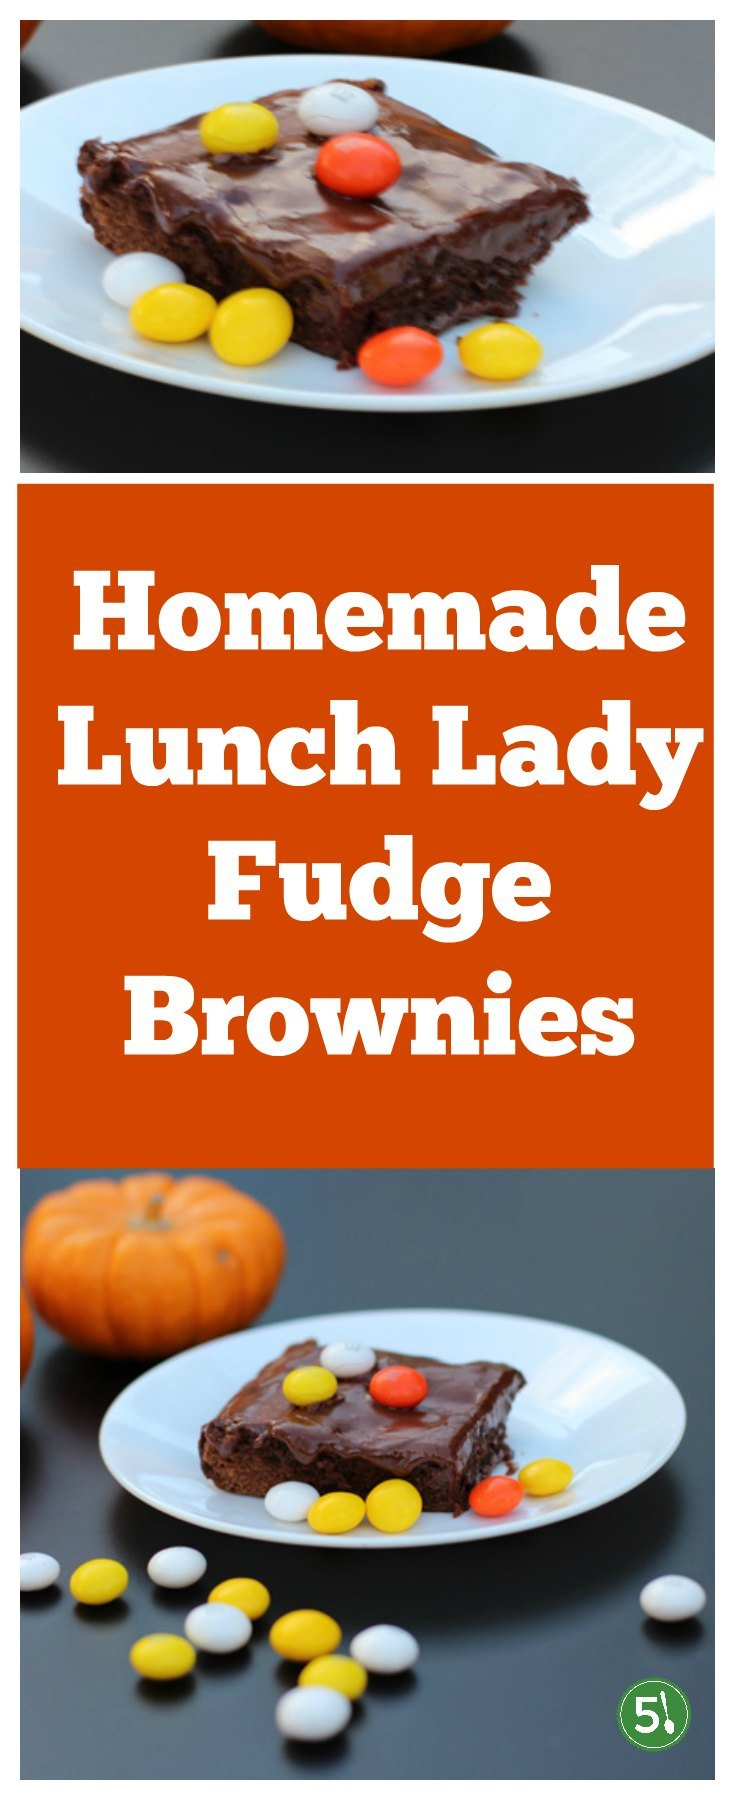 Homemade Fudge Brownies with incredible fudge frosting that are chewy, gooey, and so delicious, you'll be glad you chose a from scratch recipe. My family votes for this brownie as the best!